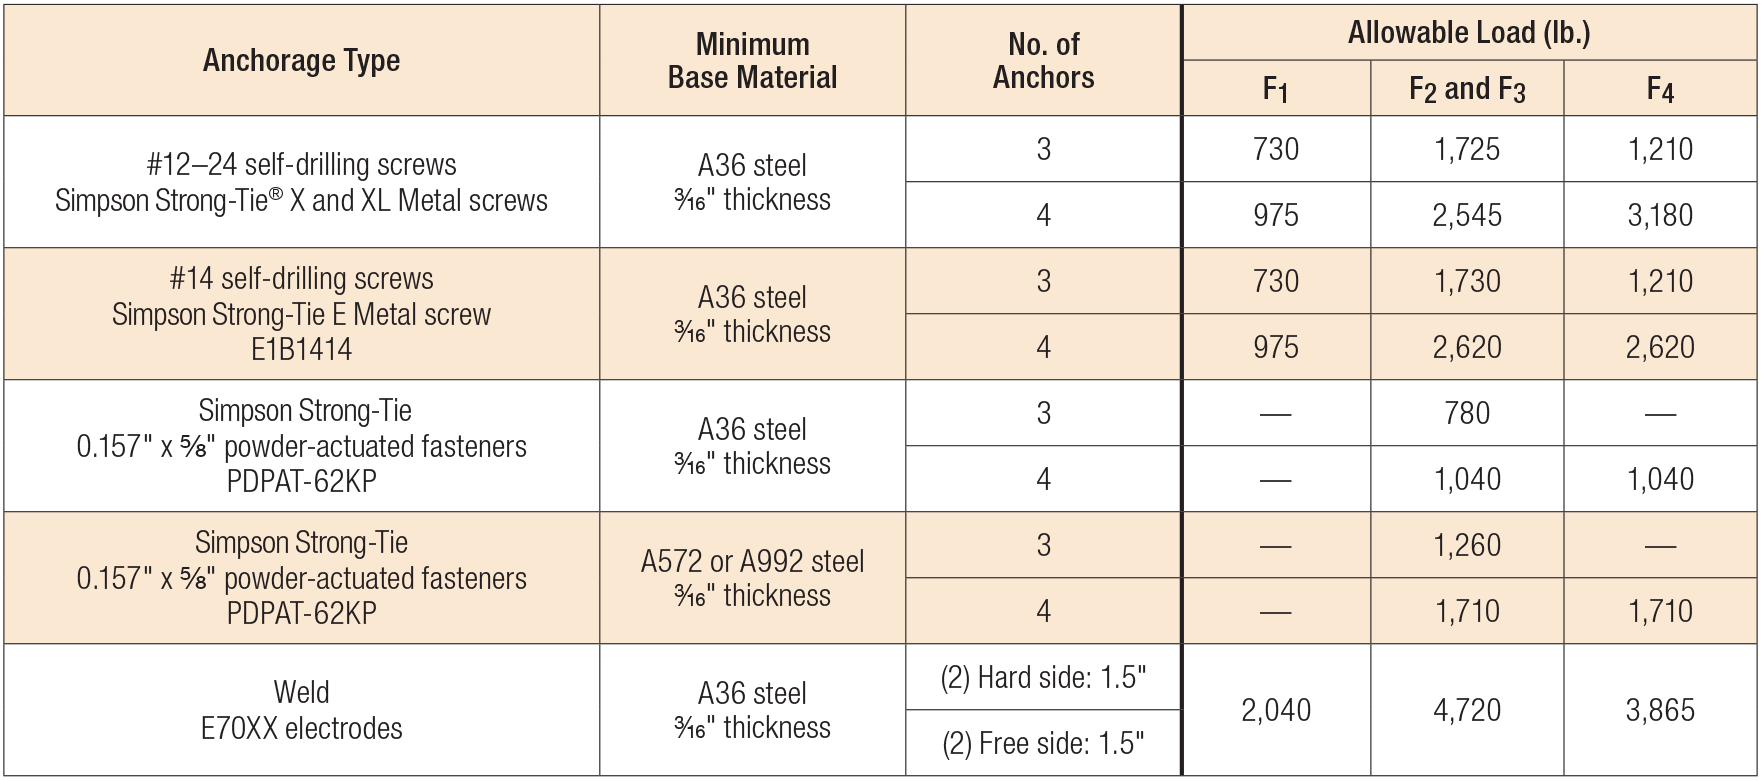 SCS Allowable Anchorage Loads to Steel